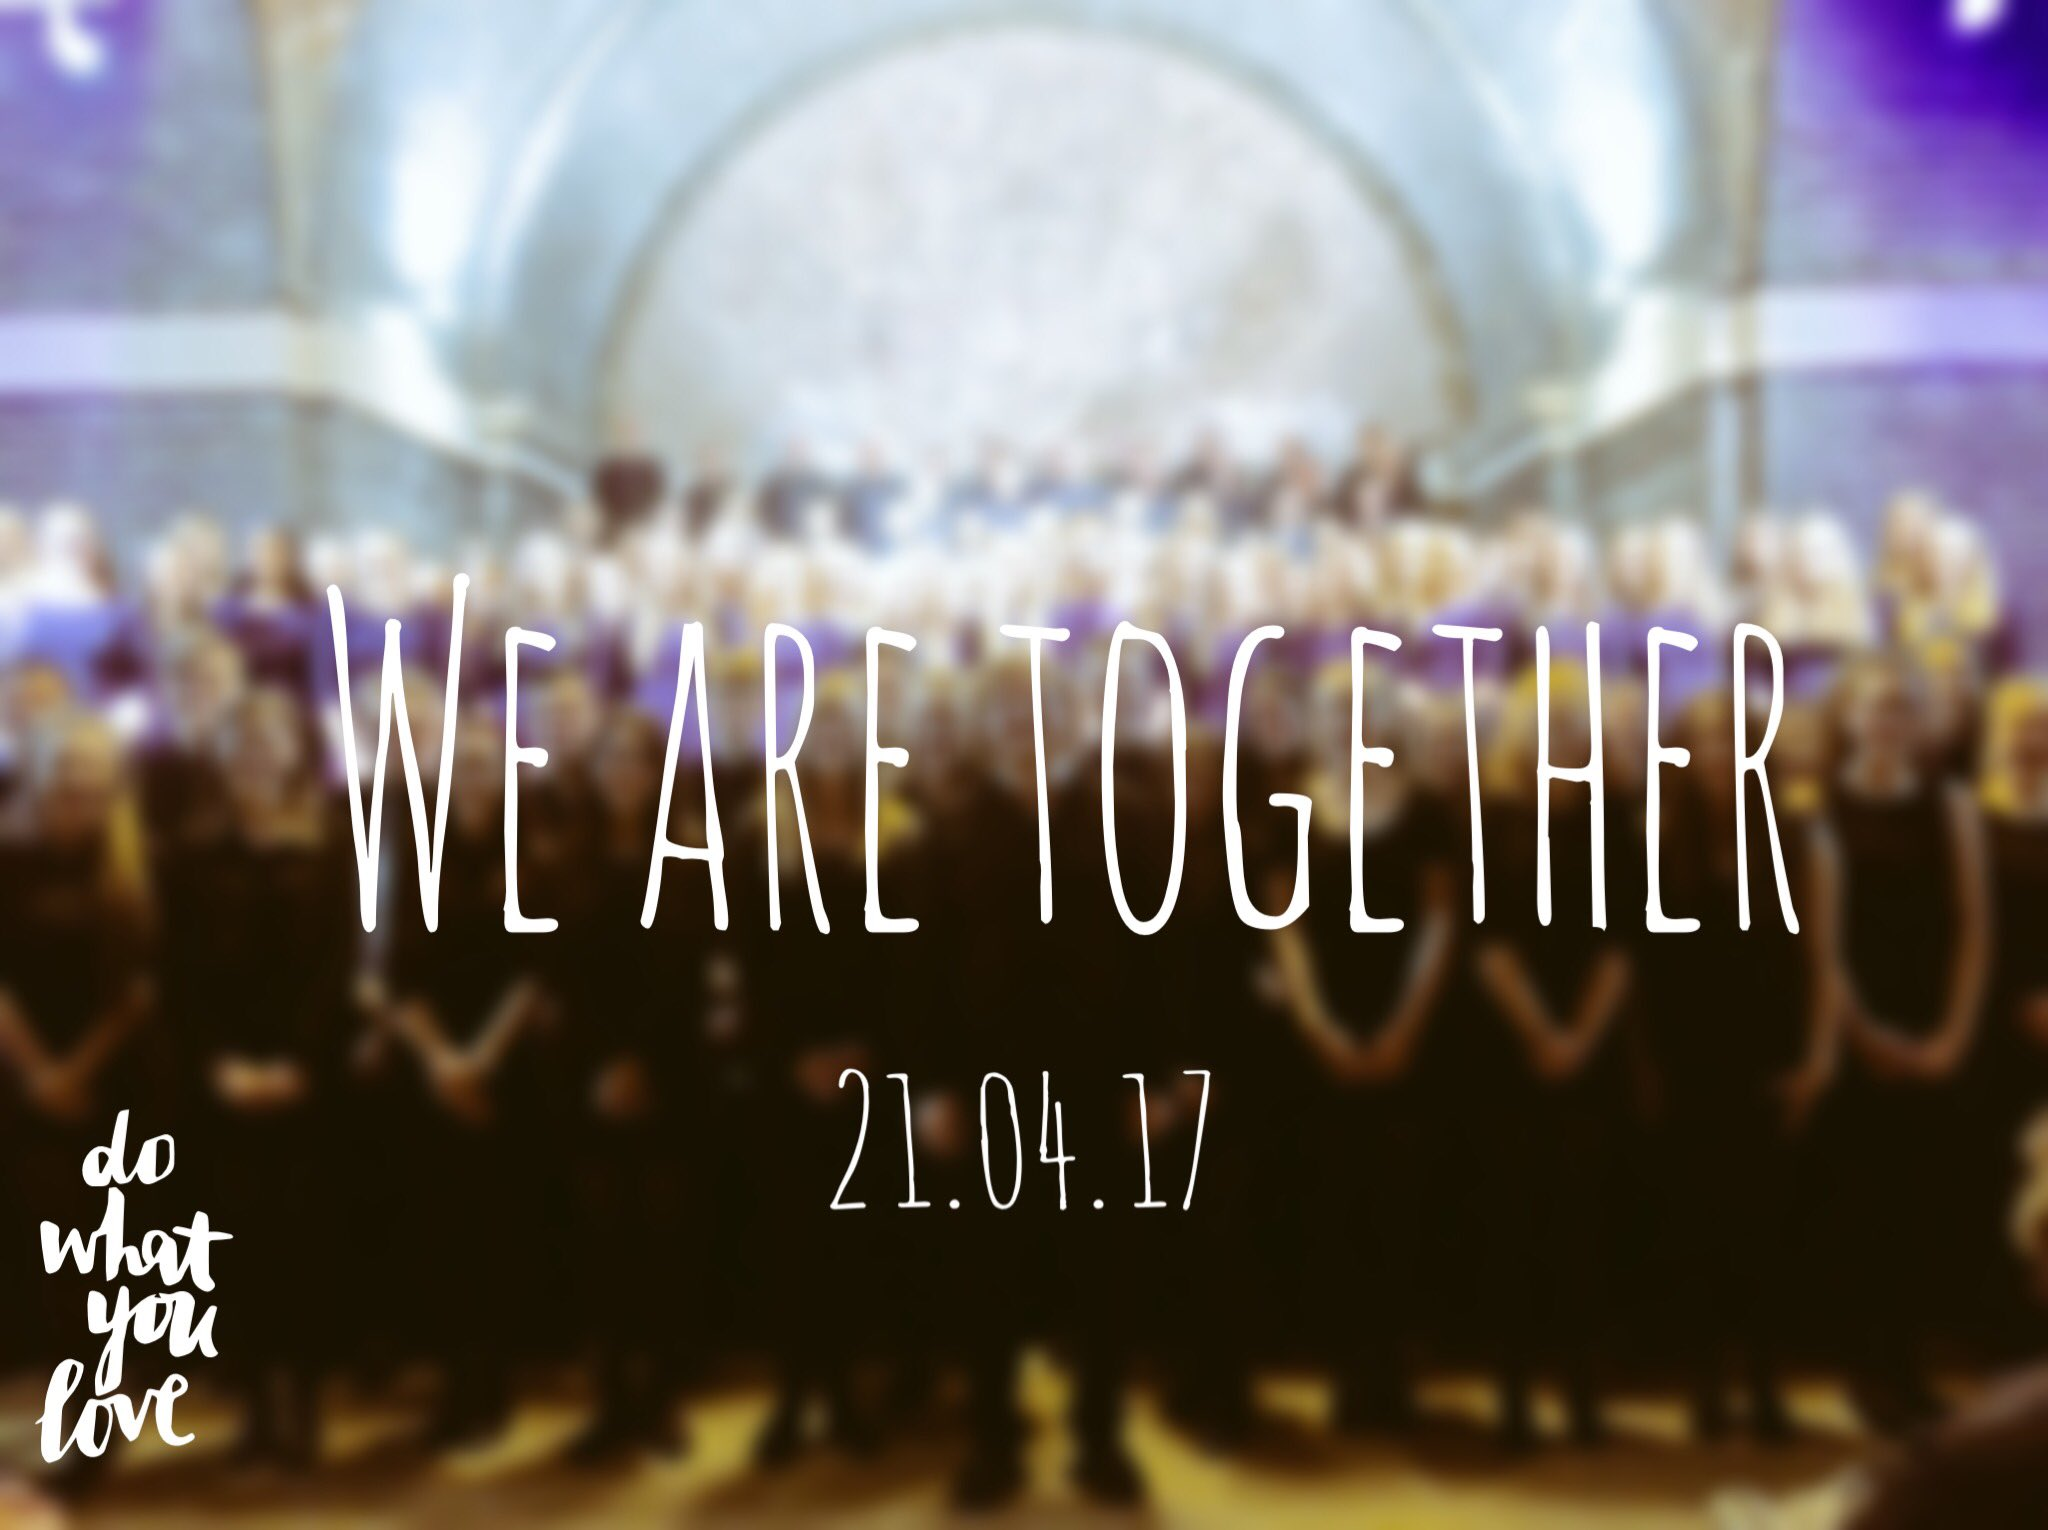 We raised an amazing £943 for @ChoirwithNoName at Friday's choirs concert in Liverpool, woo hoo! 🎉🎈🎉🎈#WeAreTogether https://t.co/C3qp2UU6f6